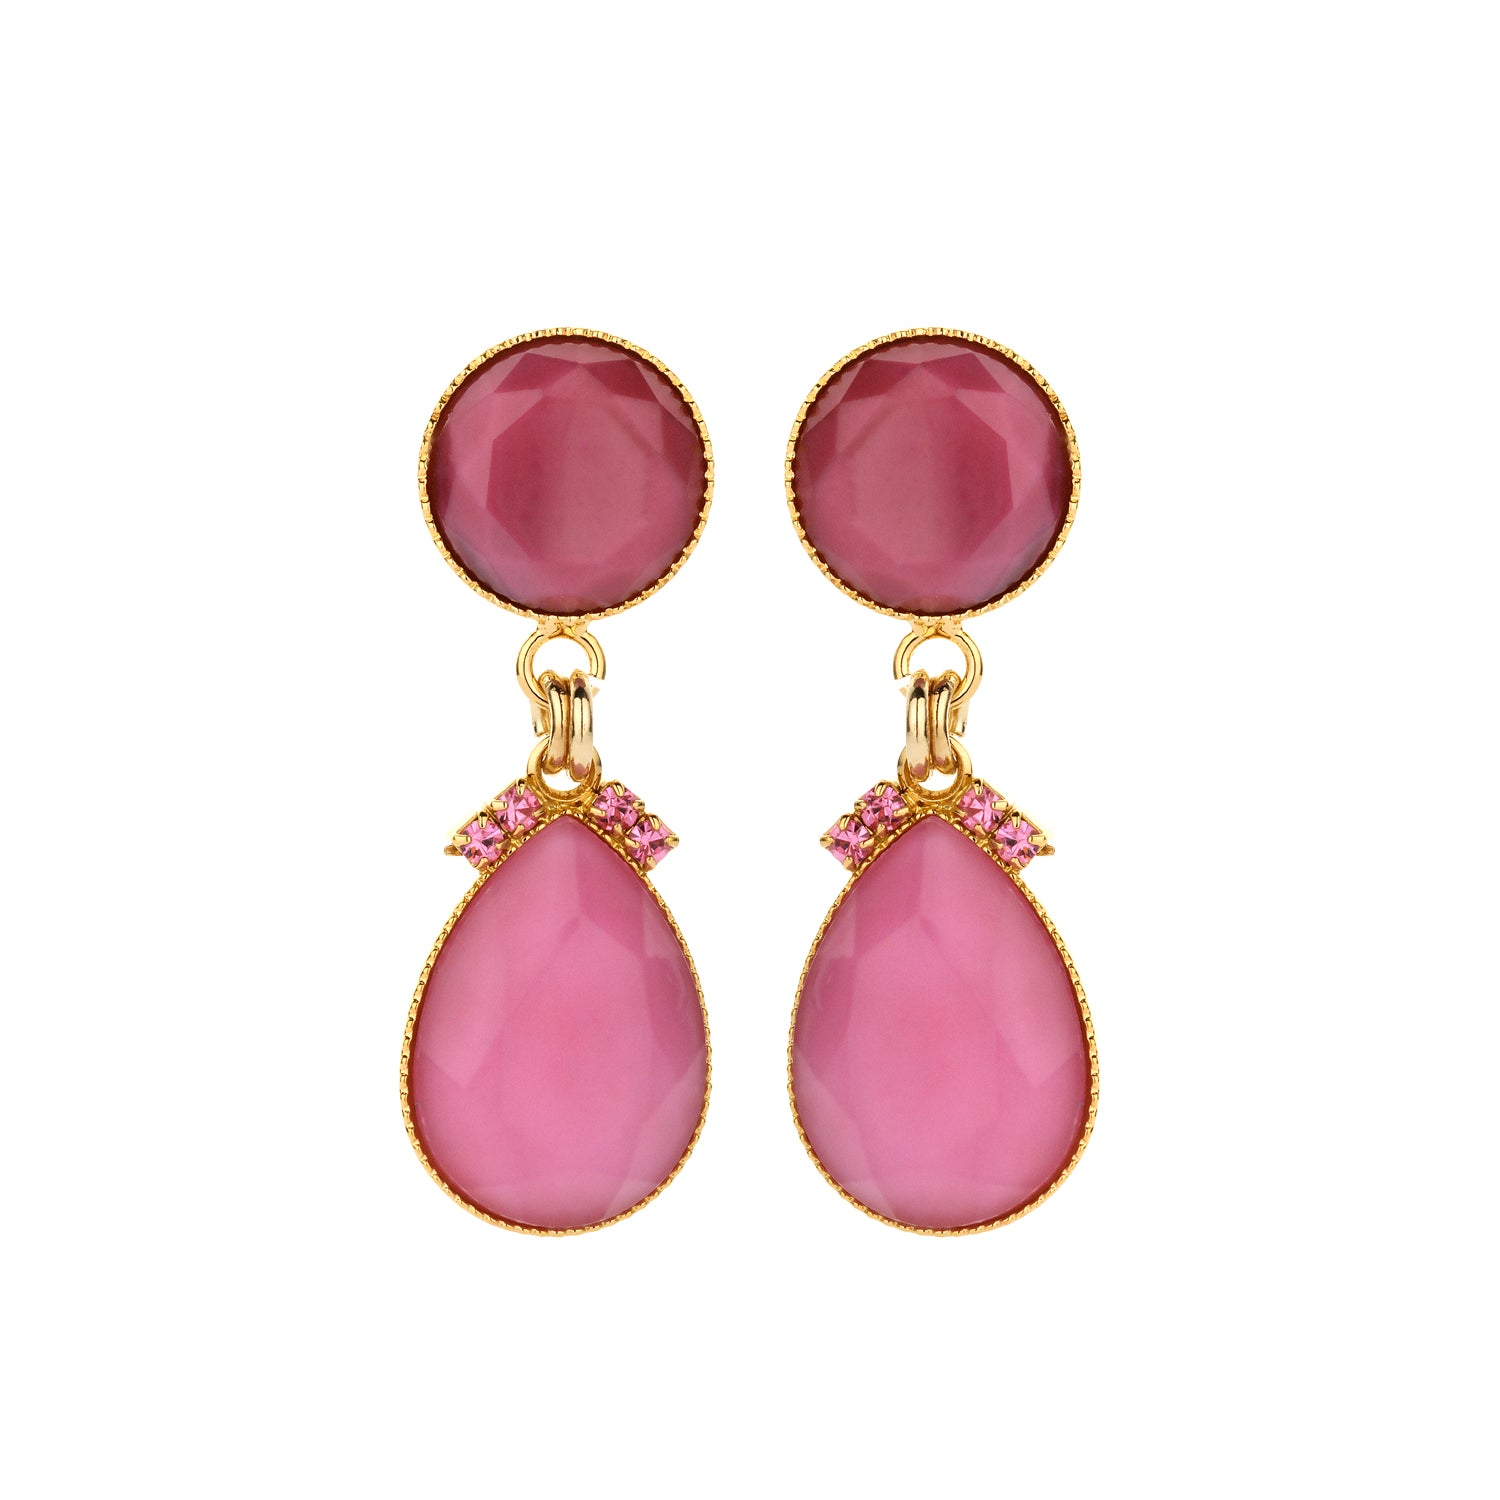 2 drops earring mini fuchsia